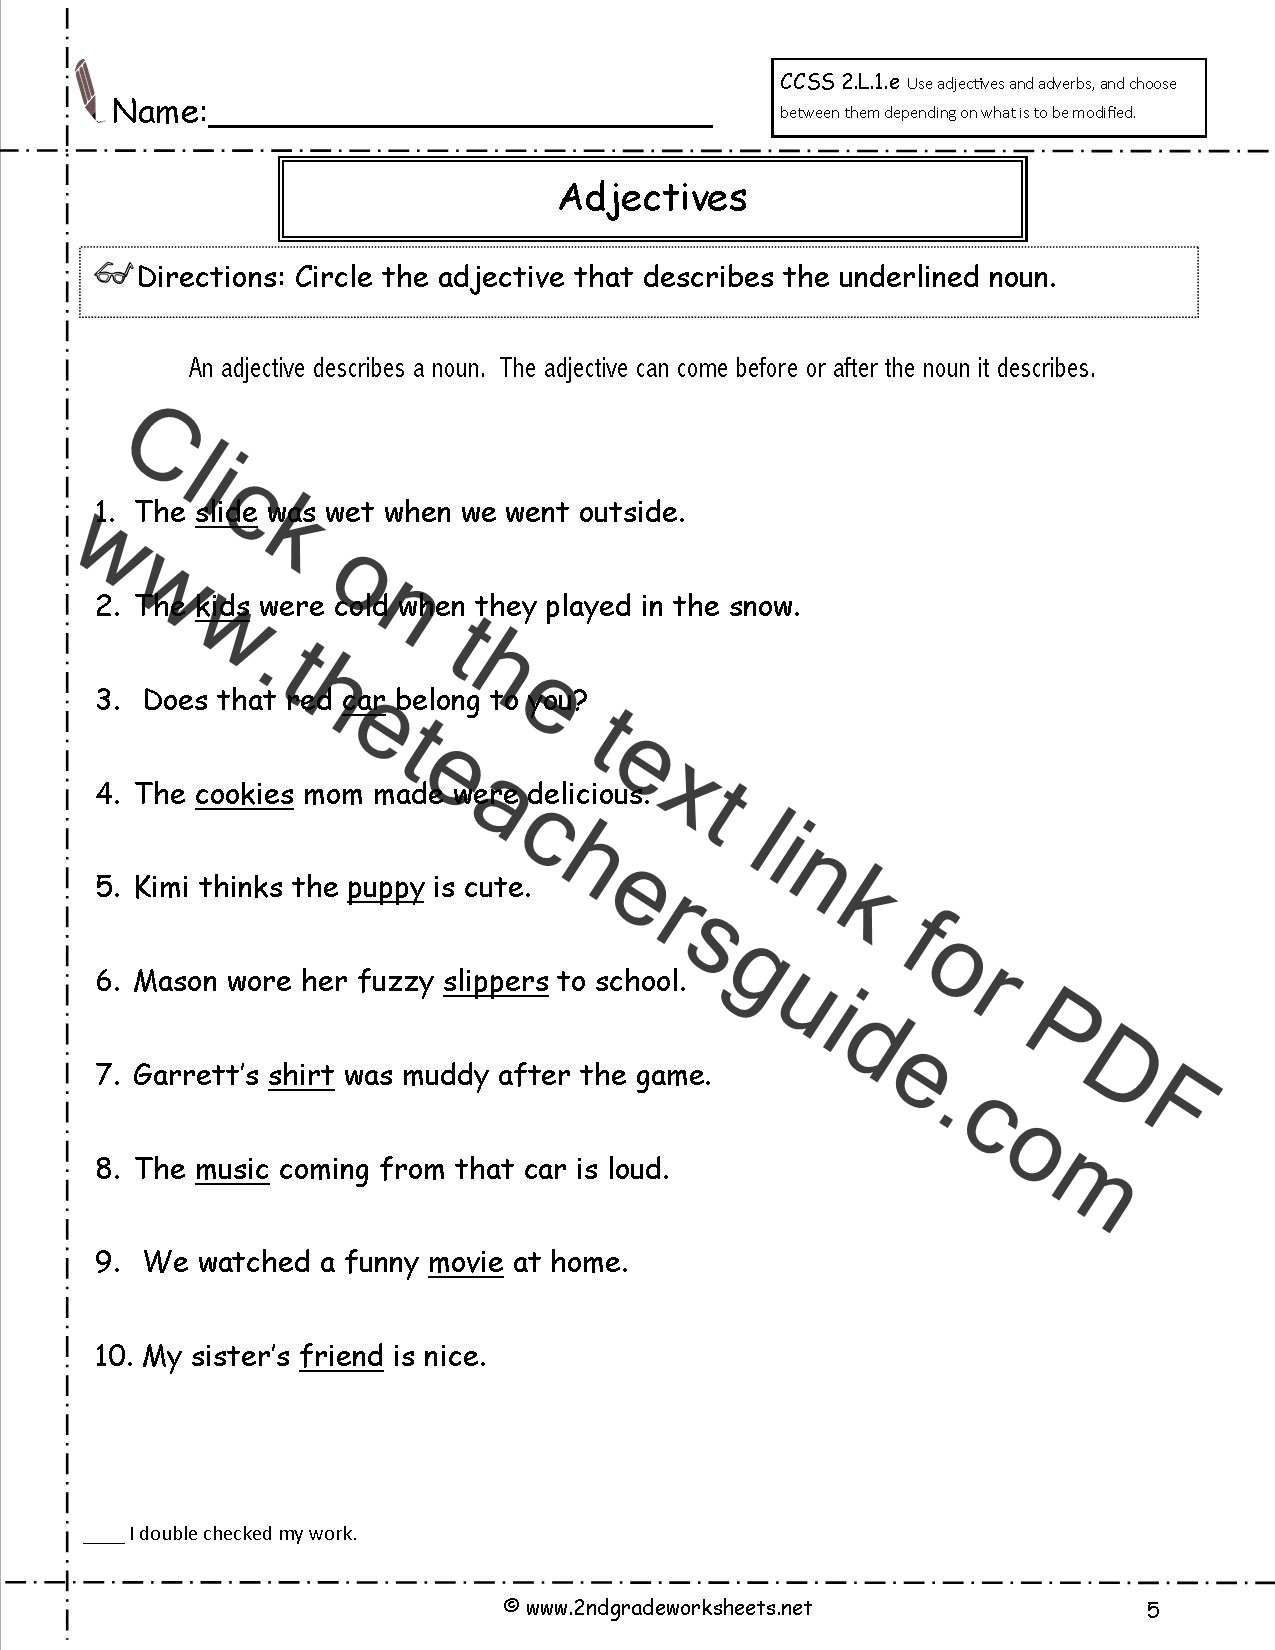 Worksheet 2nd Grade Grammar Worksheets 2nd grade adjective worksheet coffemix free using adjectives and adverbs worksheets